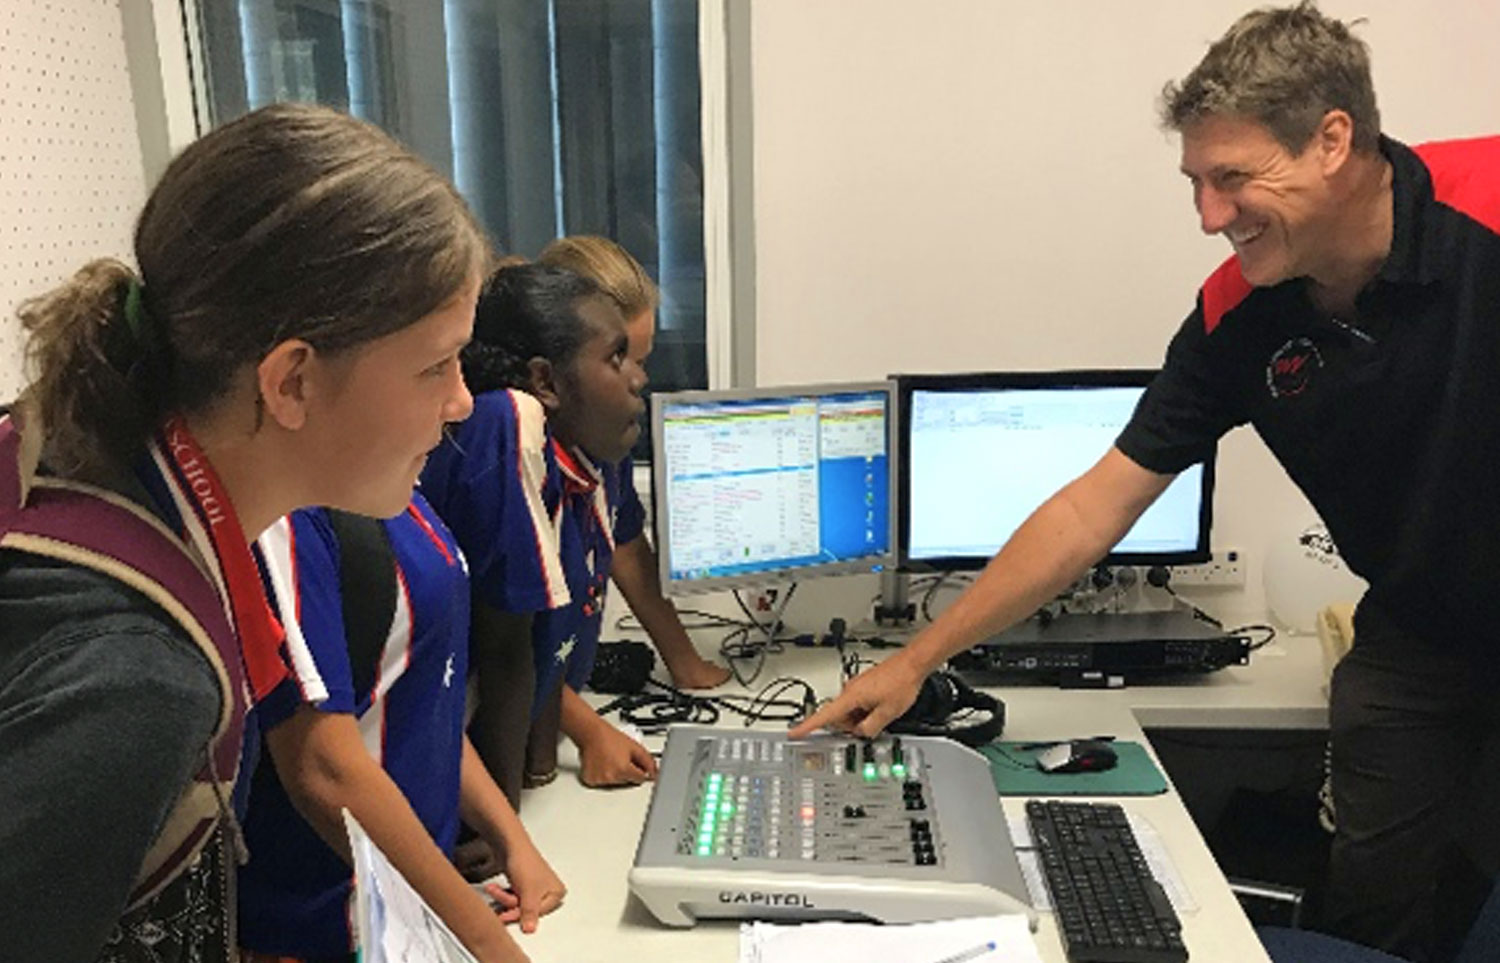 The girls talking over the console